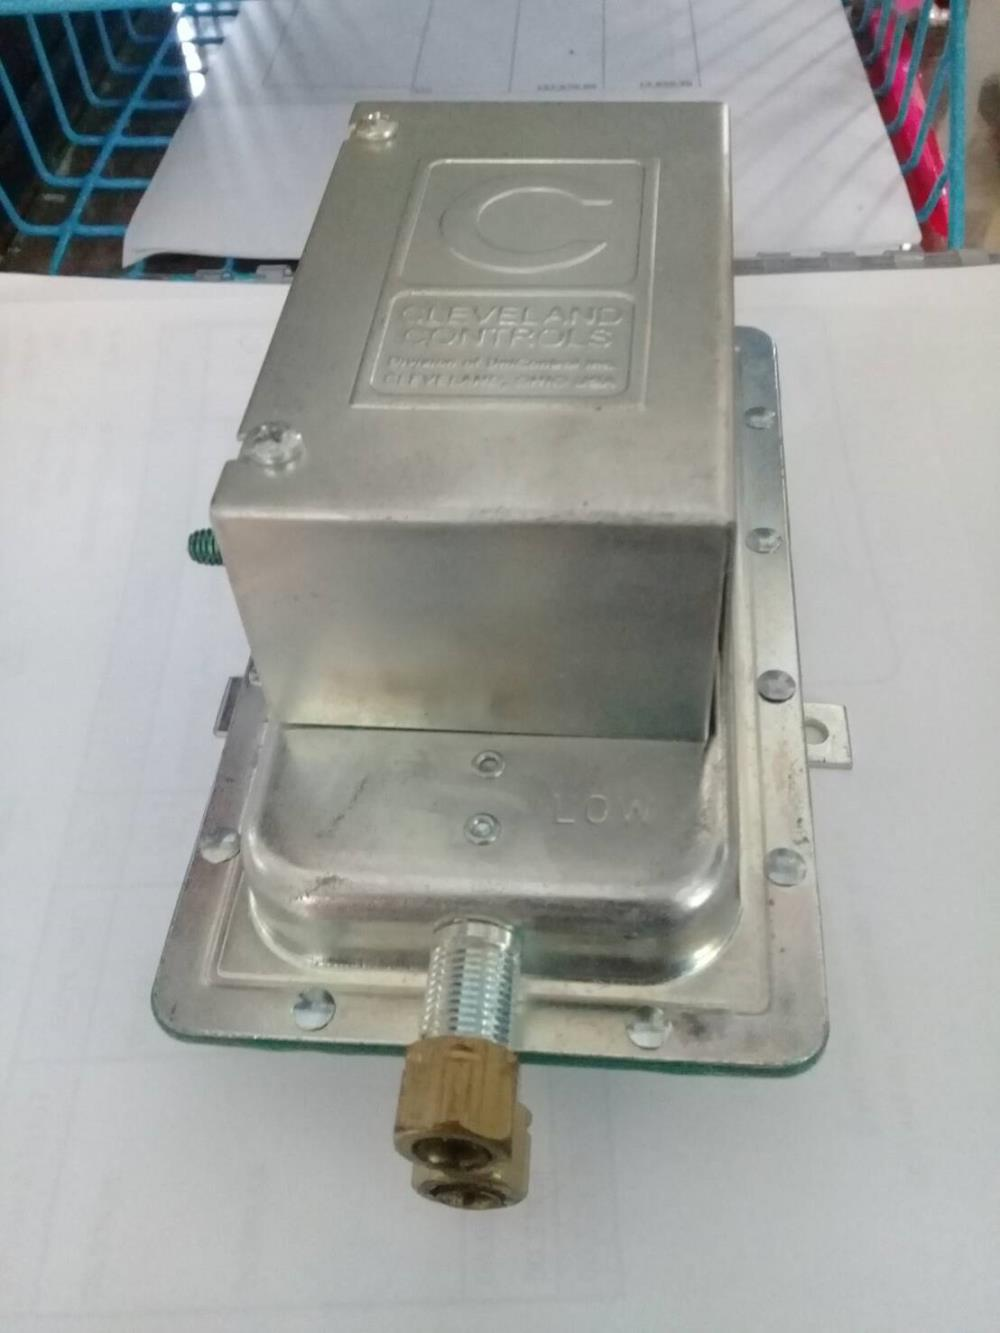 """"""" Cleveland """" Pressure Switch,"""" Cleveland """" Pressure Switch Model : AFS-222,Cleveland,Instruments and Controls/Switches"""